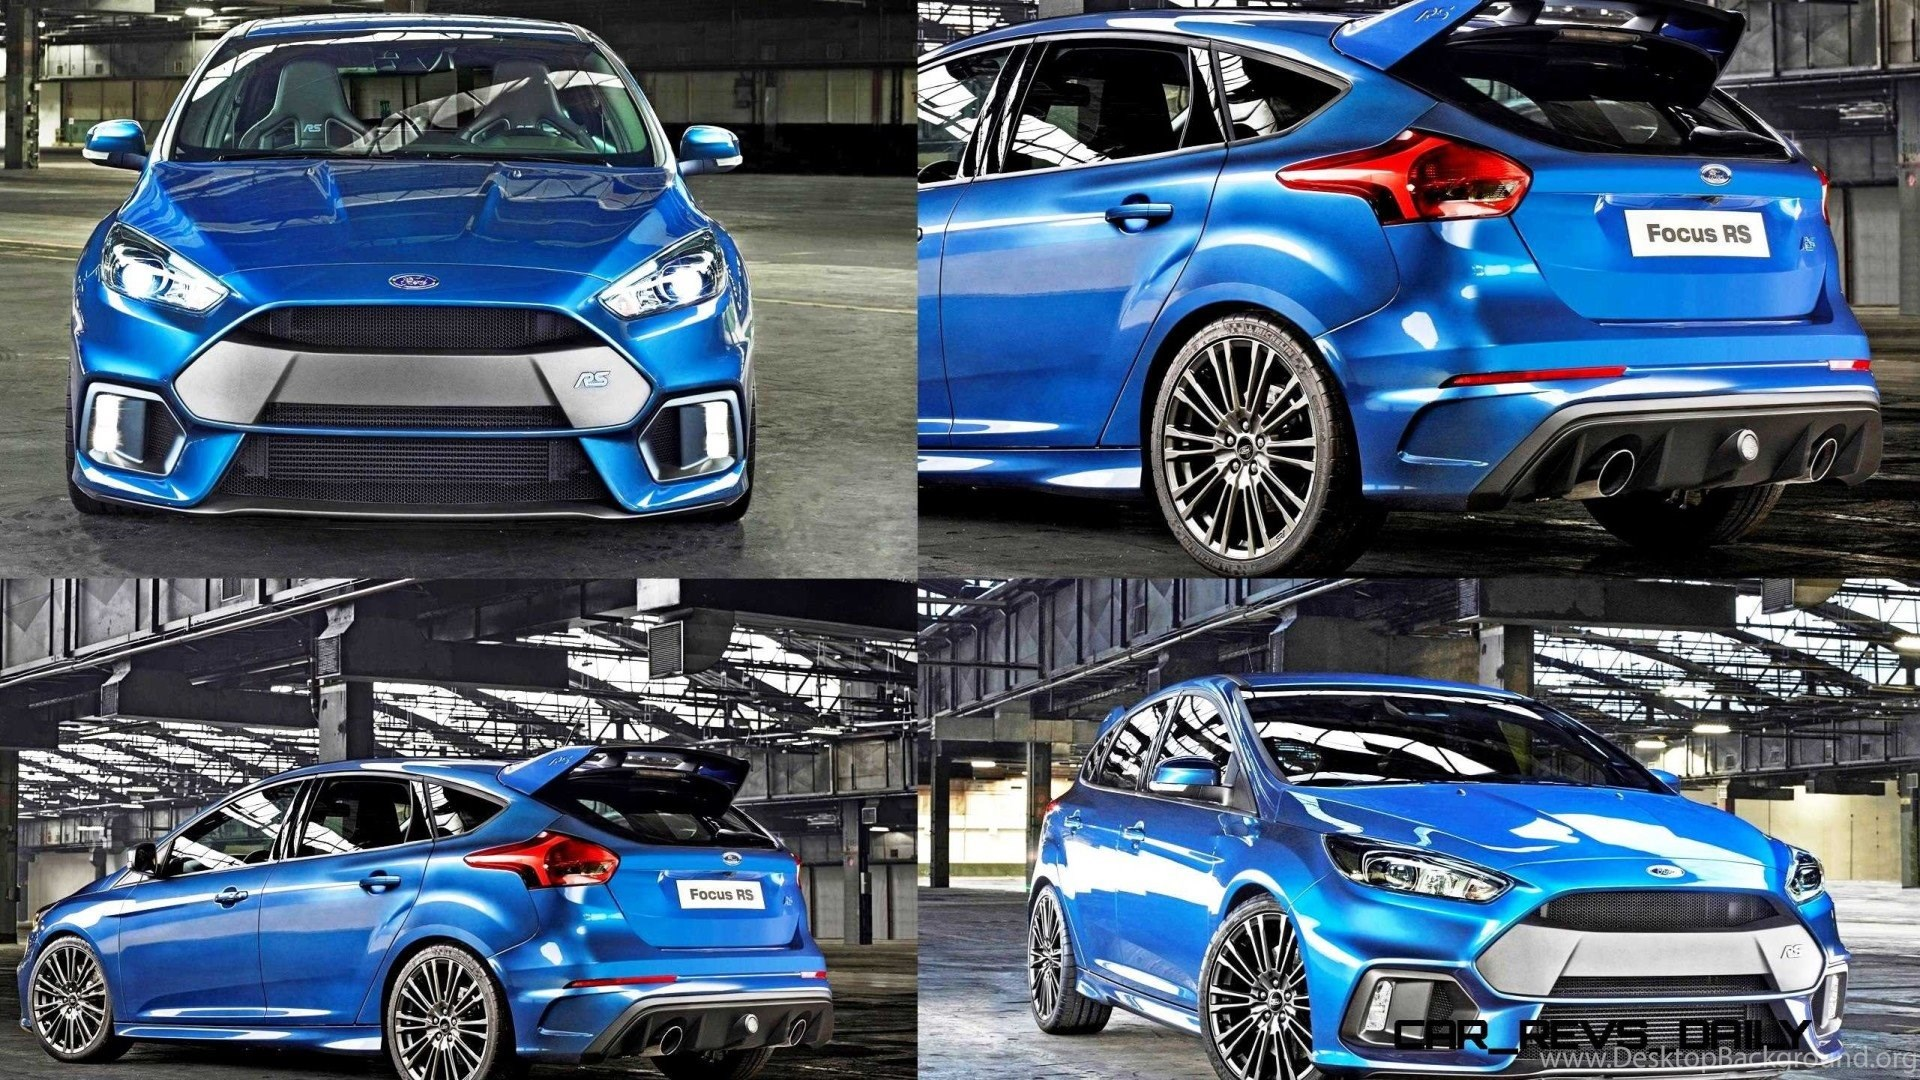 2017 Ford Focus Rs Wallpapers Image Desktop Background